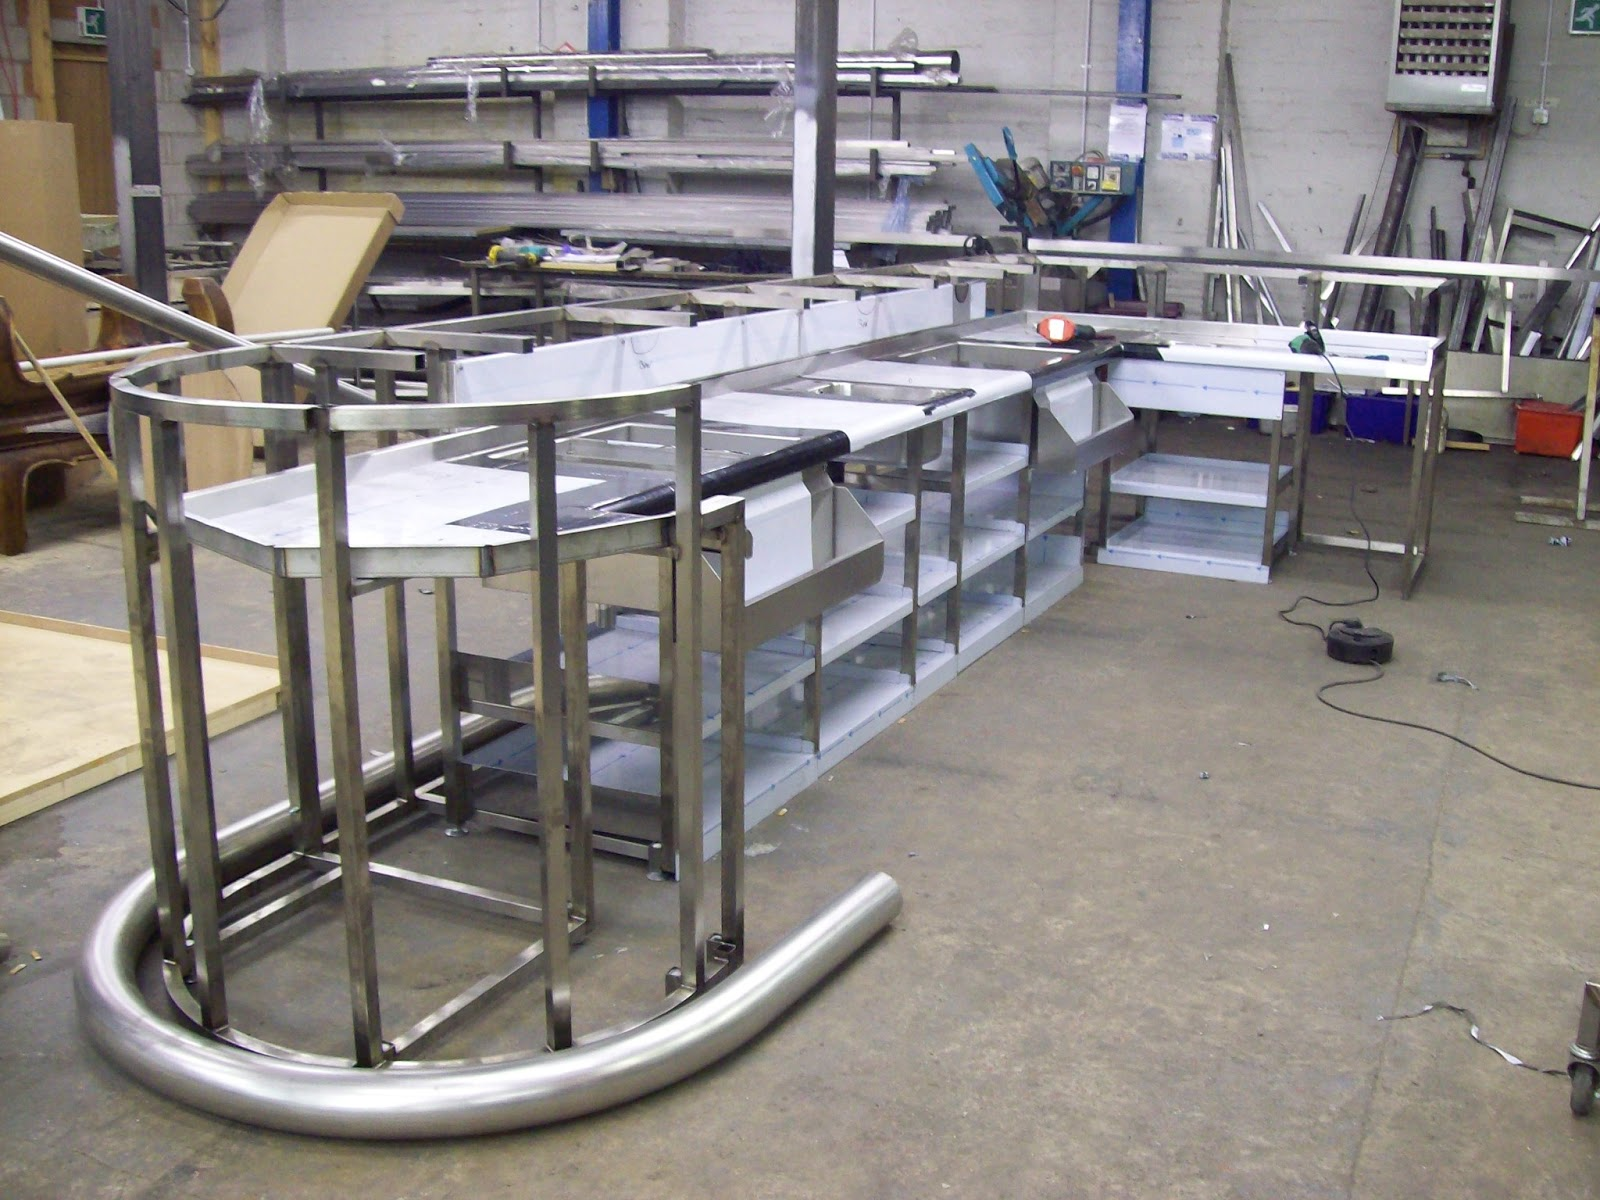 Stainless steel fabrication photos